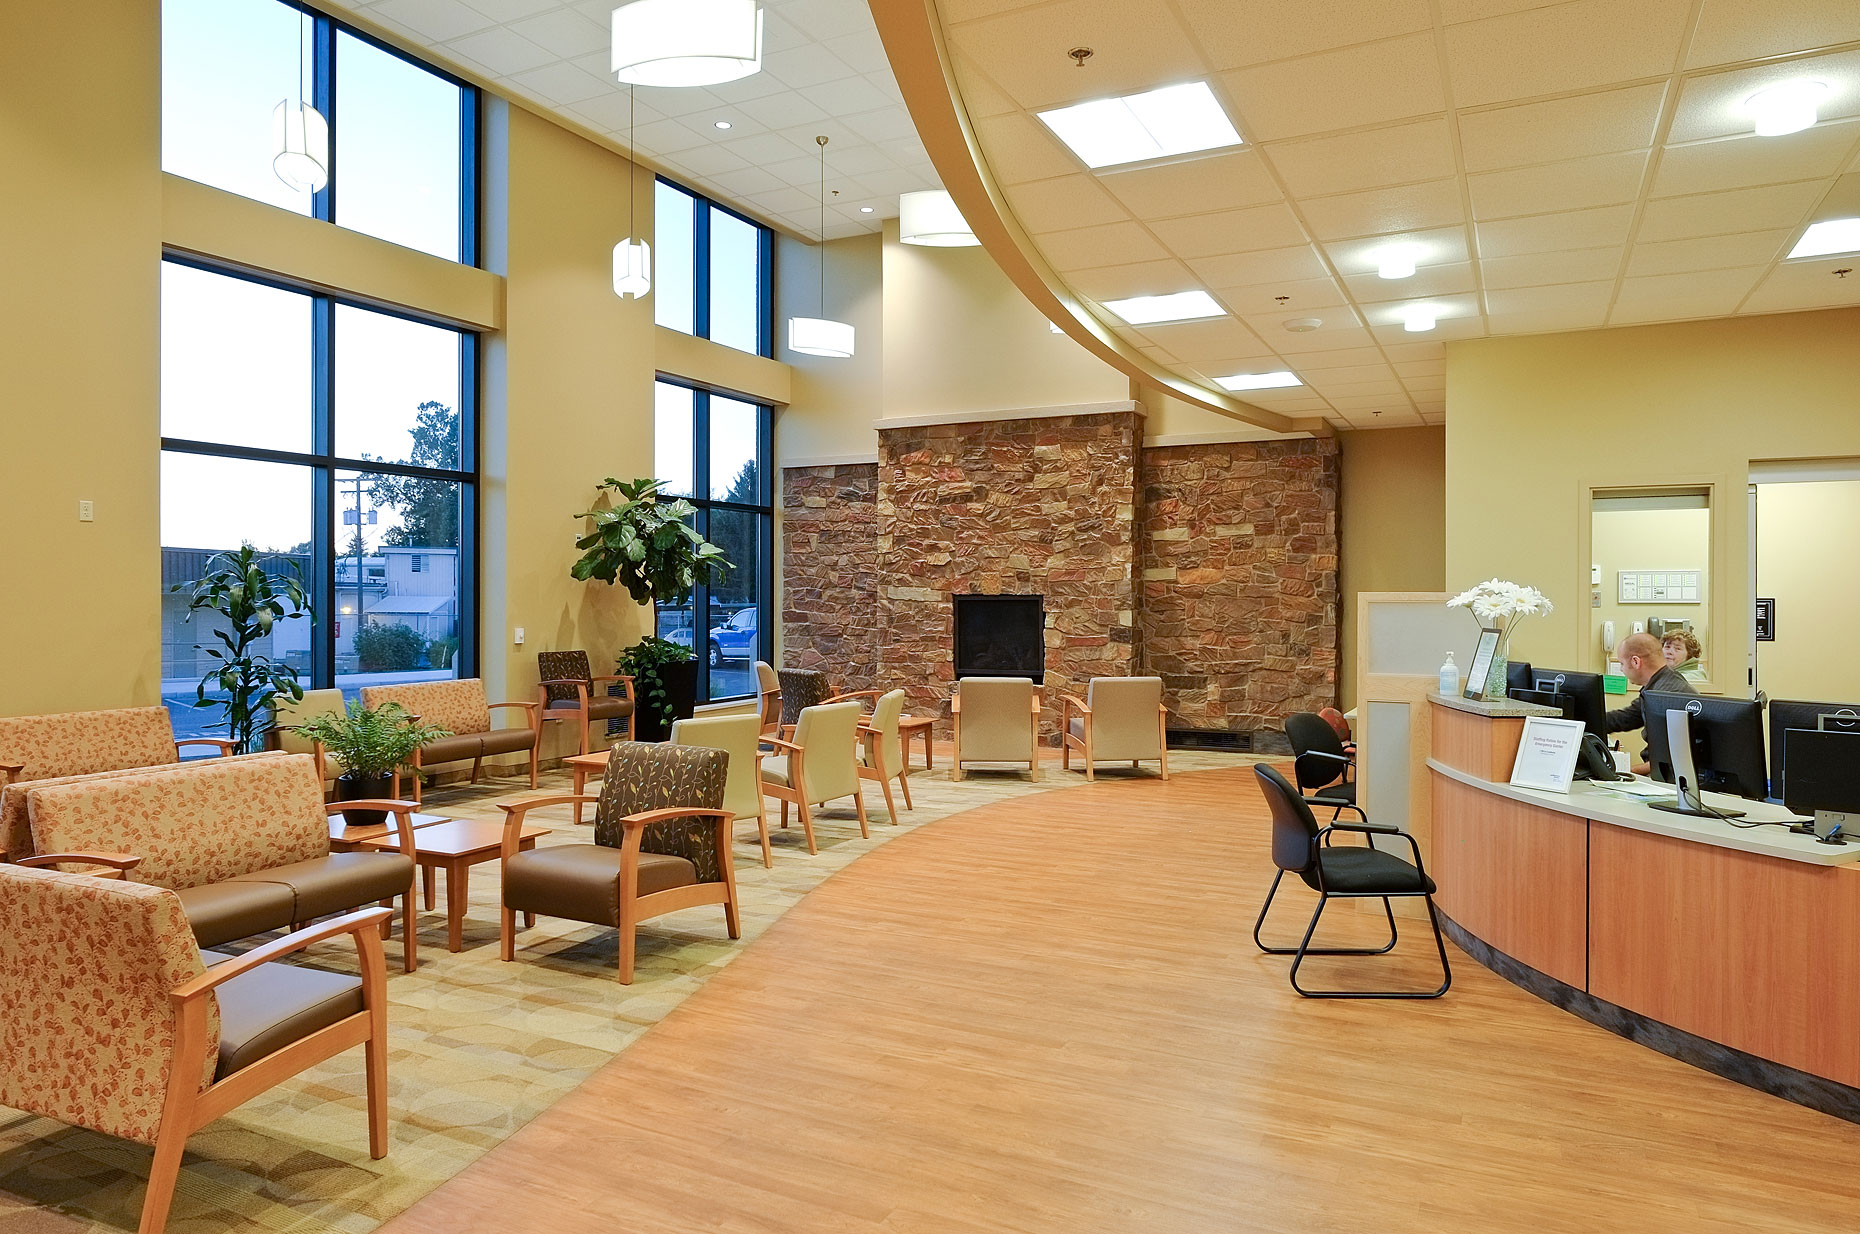 ER Waiting Area Walla Walla General Hospital